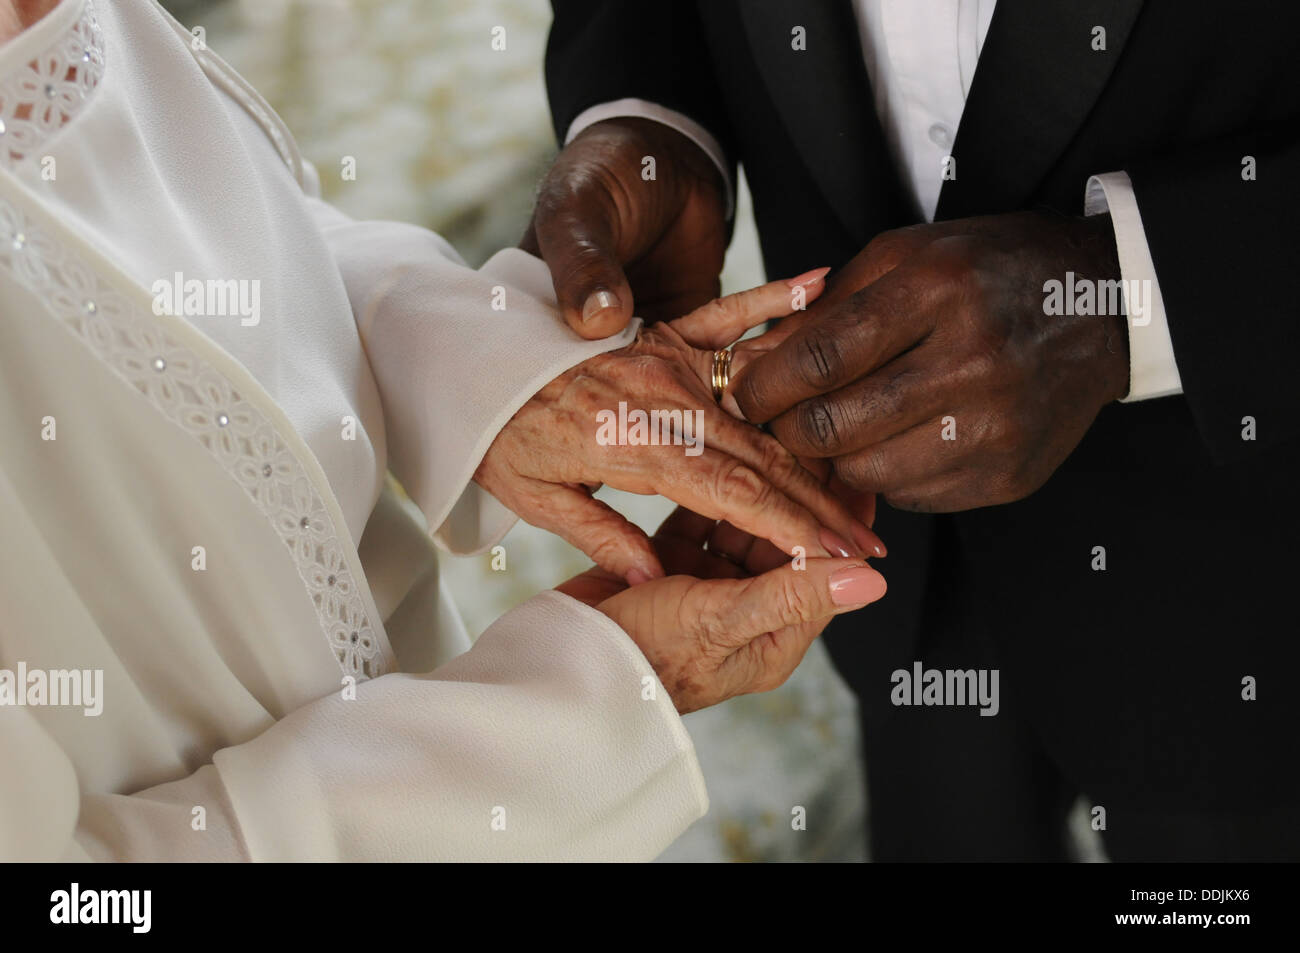 Mature multi-ethnic couple exchanging  wedding rings during the wedding ceremony - Stock Image